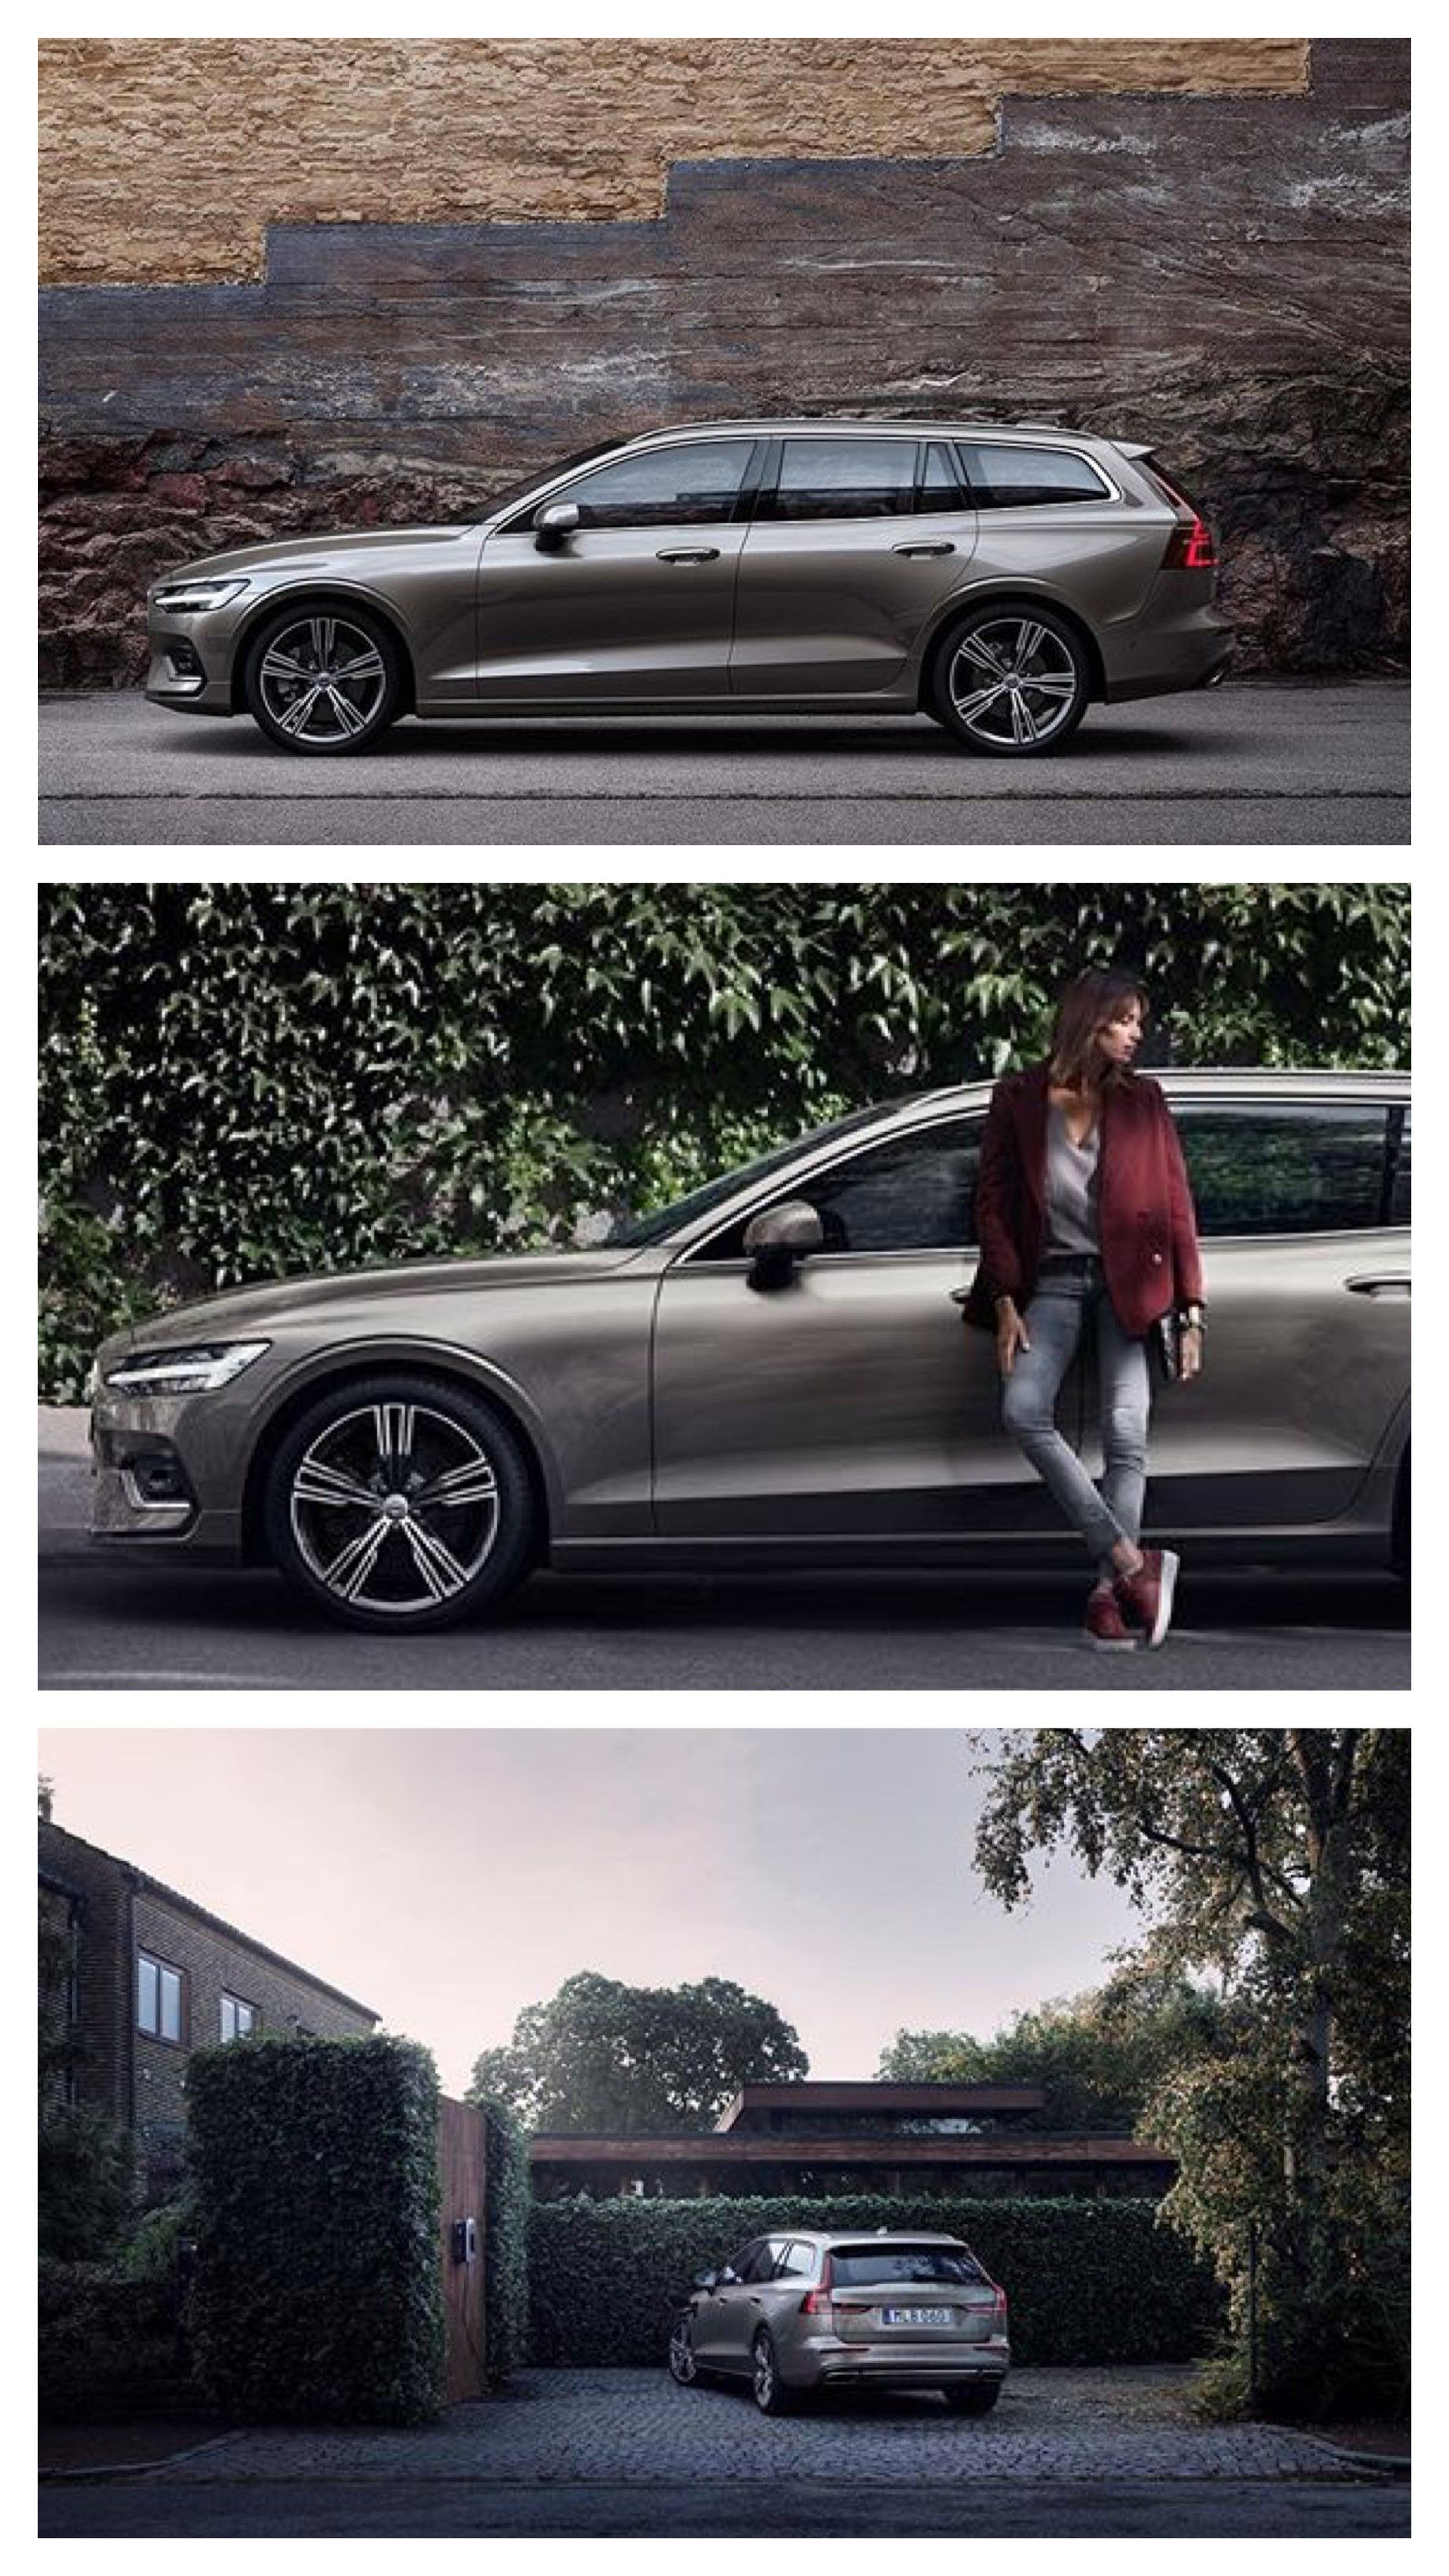 Discover More About The V60 A Versatile New Car For People Who Appreciate Beautiful Design An Inspiring Drive And Technology Tha Volvo Volvo Cars Volvo V60